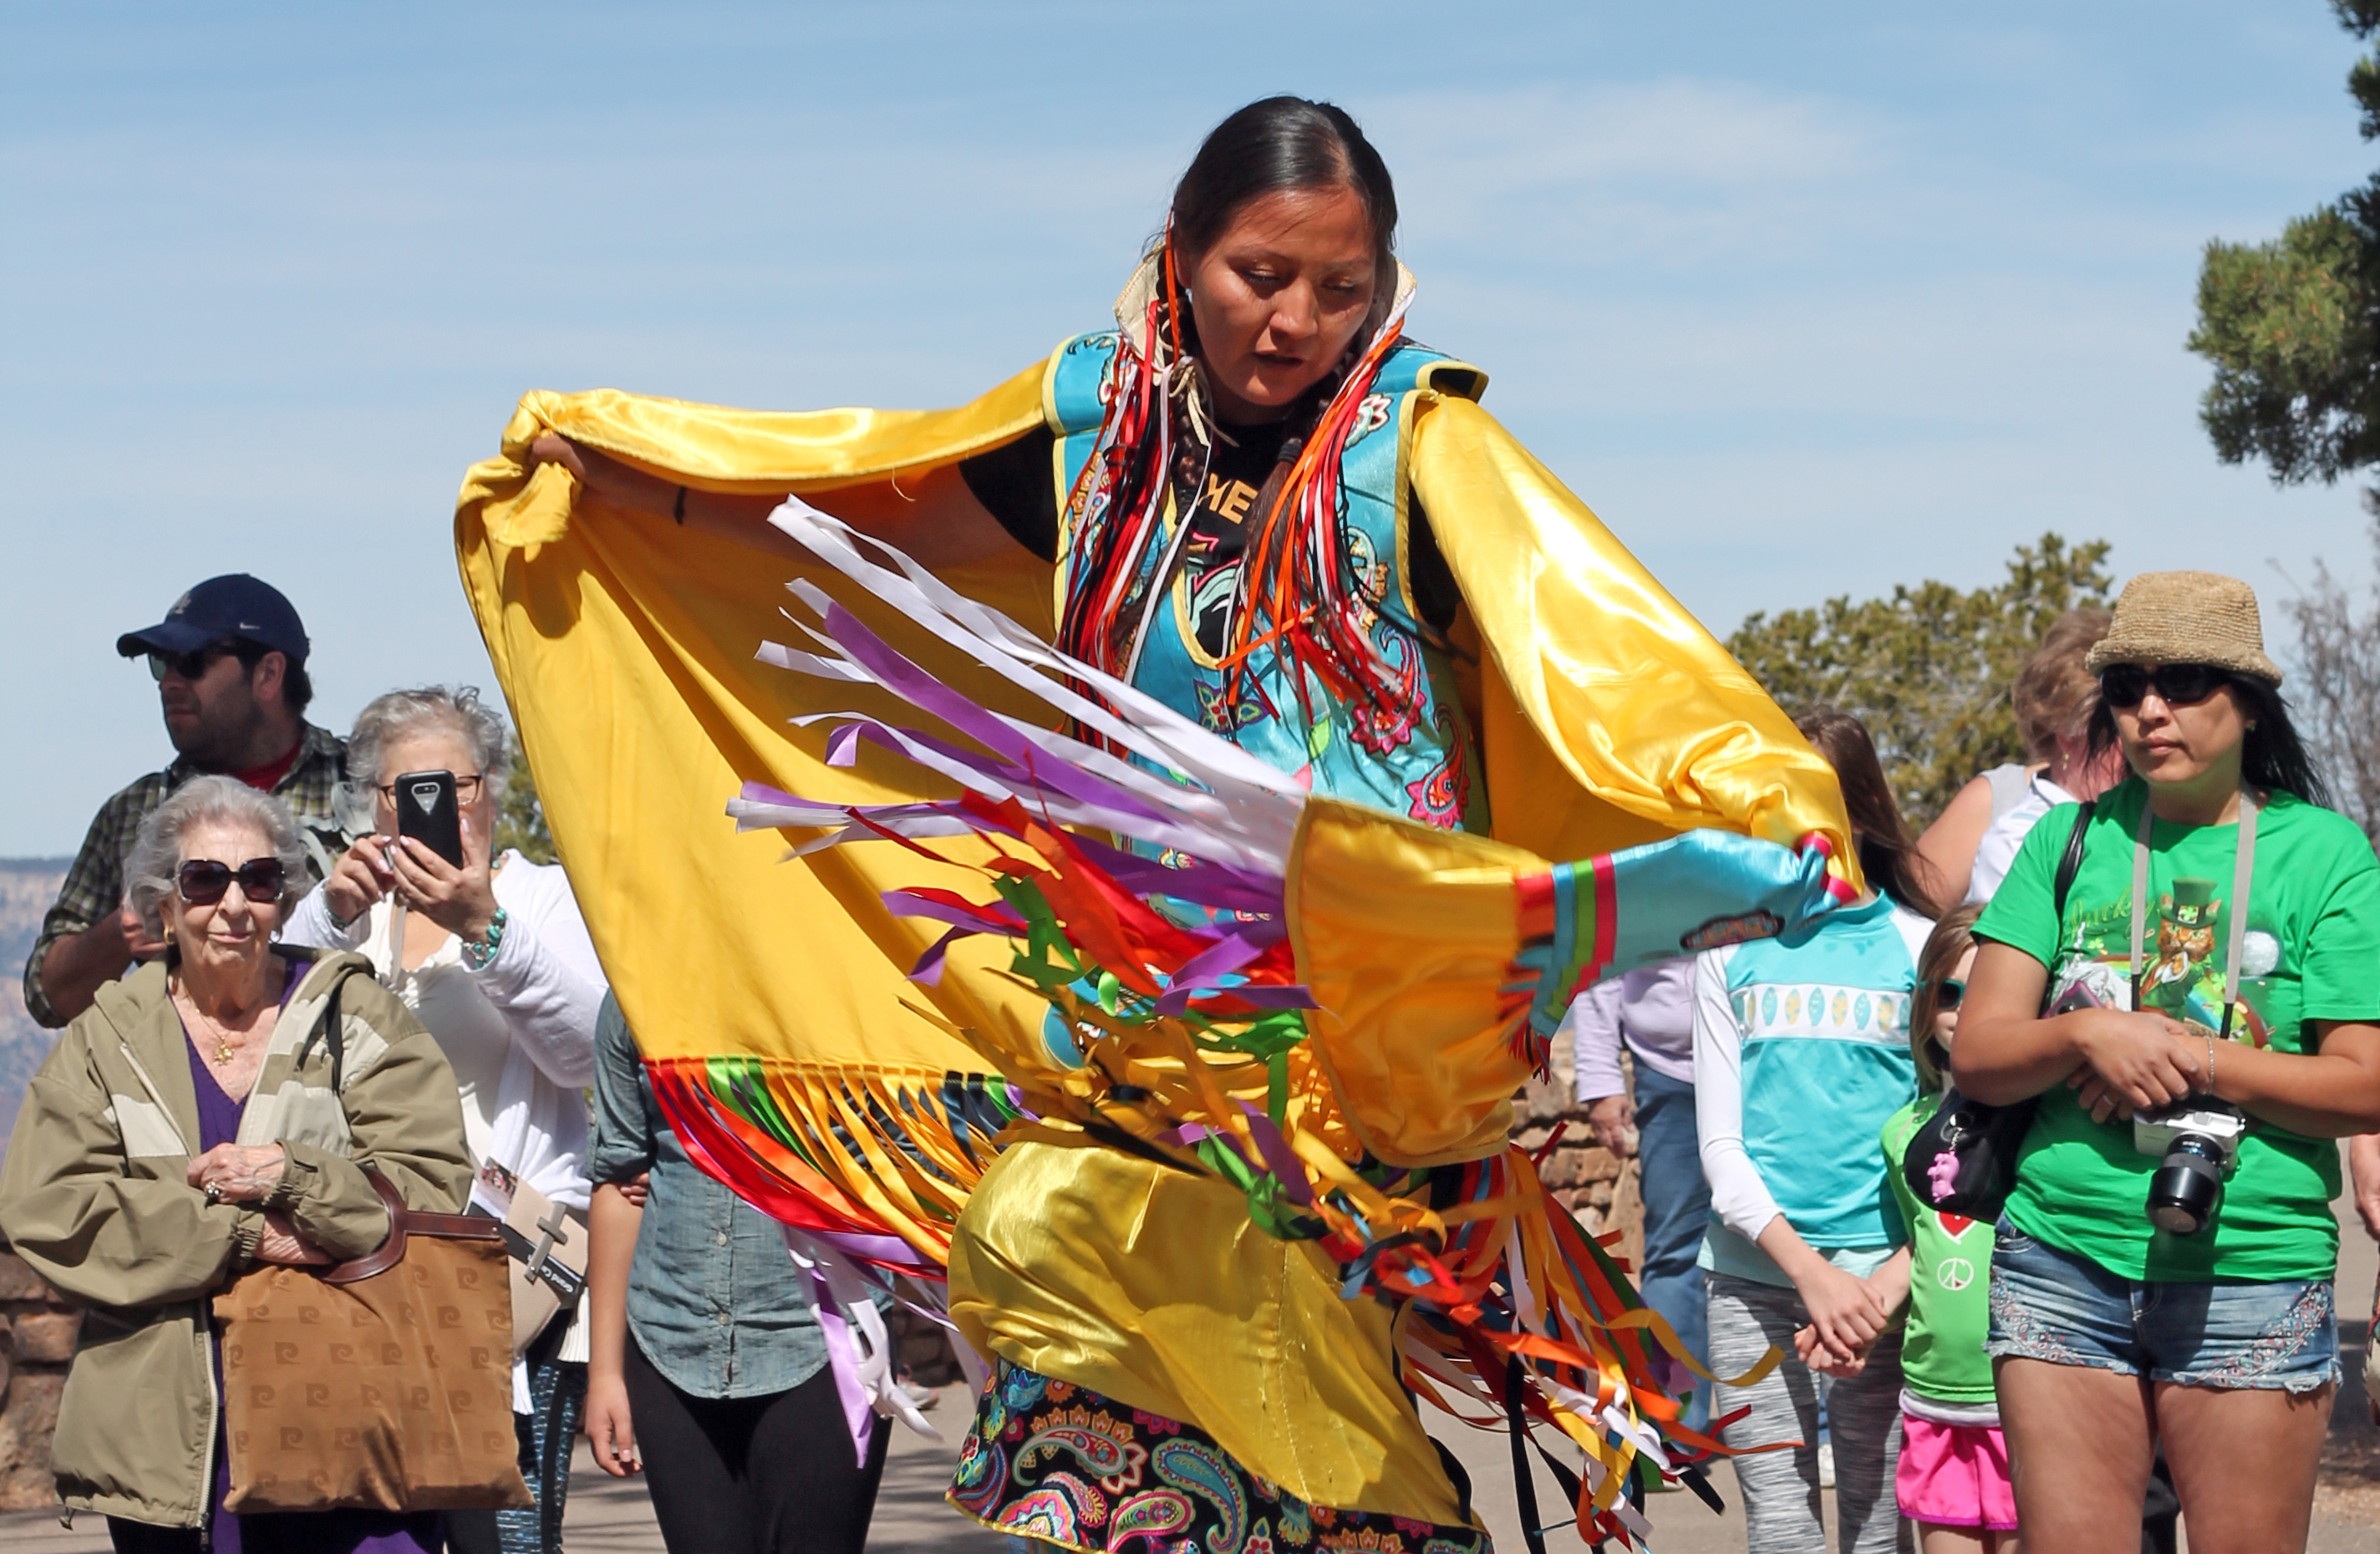 navajo religion Traditionally, many navajos considered eating fish or fowl a taboo because of religious beliefs regarding fish and birds  learn about navajo religion.